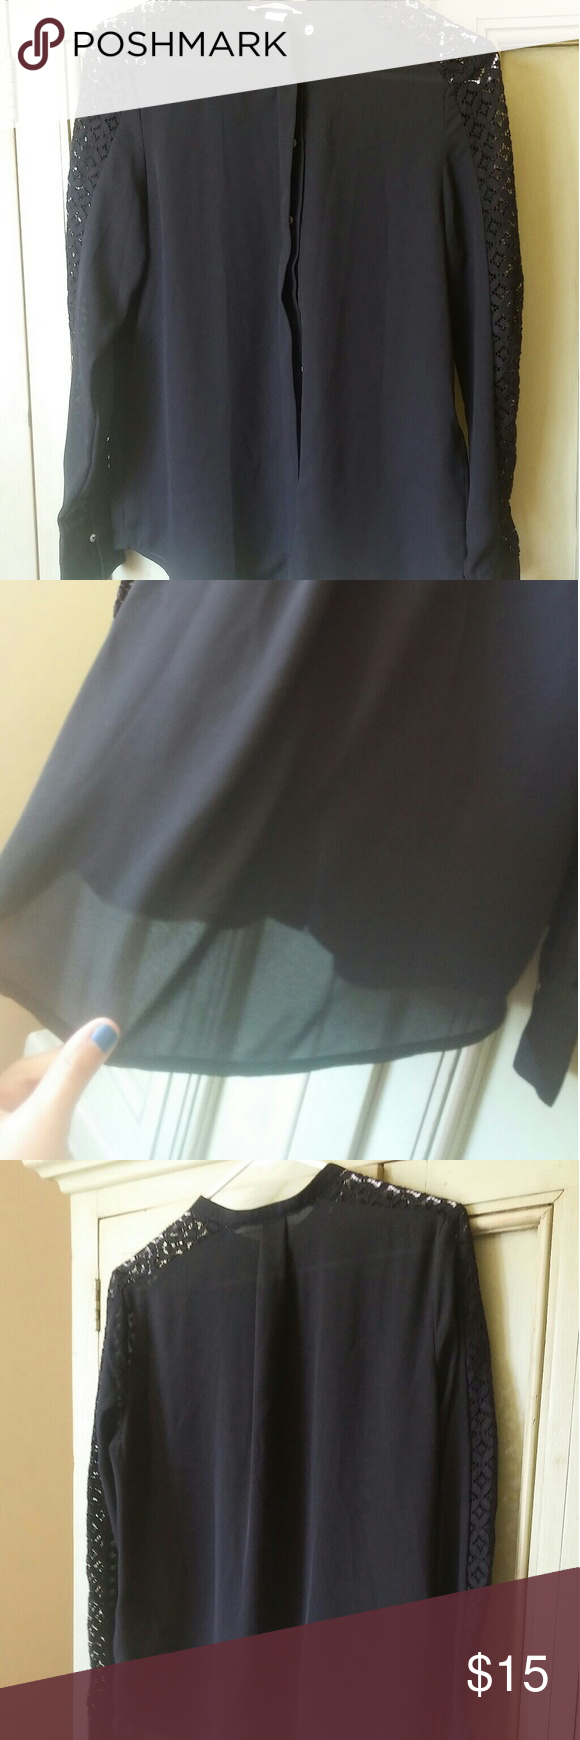 Black  Button Up Blouse Nwt black Button Up Blouse size 4 fits small and xs as well H&M Tops Blouses